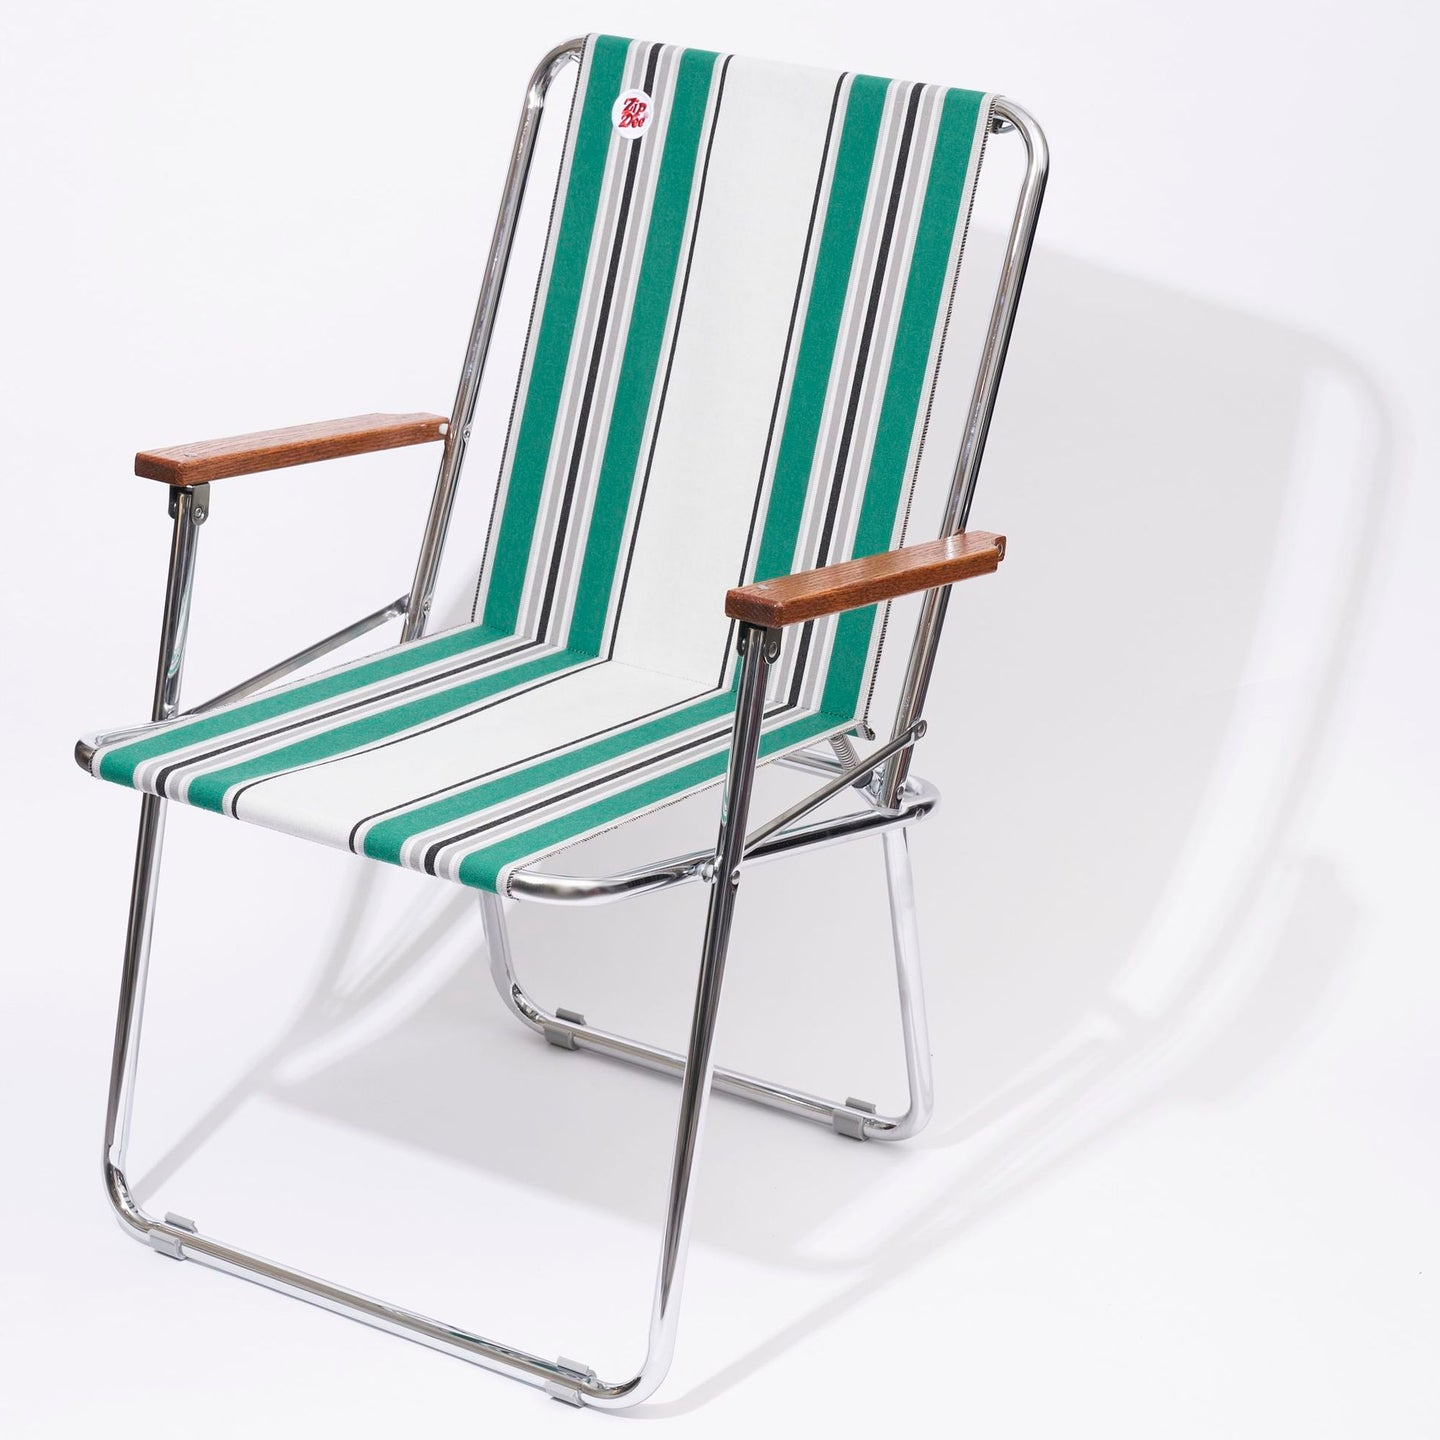 ZIP DEE CHAIR col.4752 [Green/Grey 4 bar] Vintage